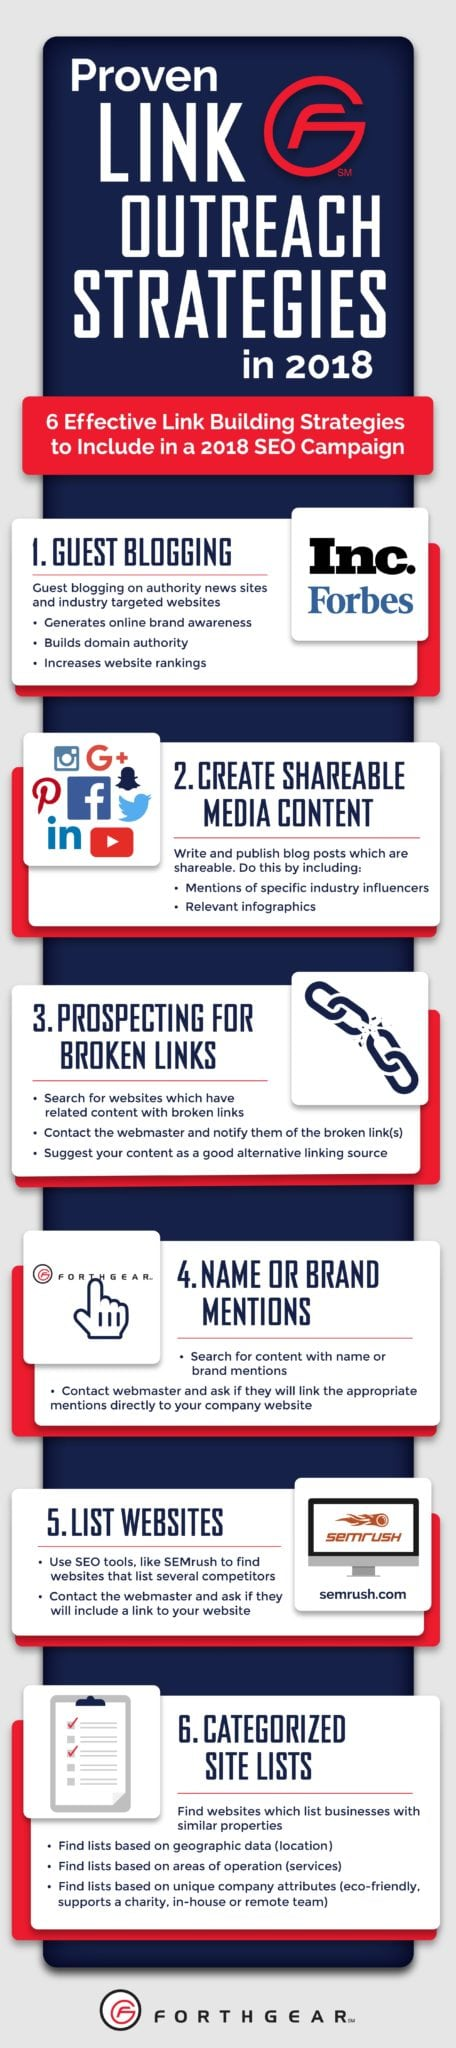 Proven Link Outreach Strategies Infographic v2-01